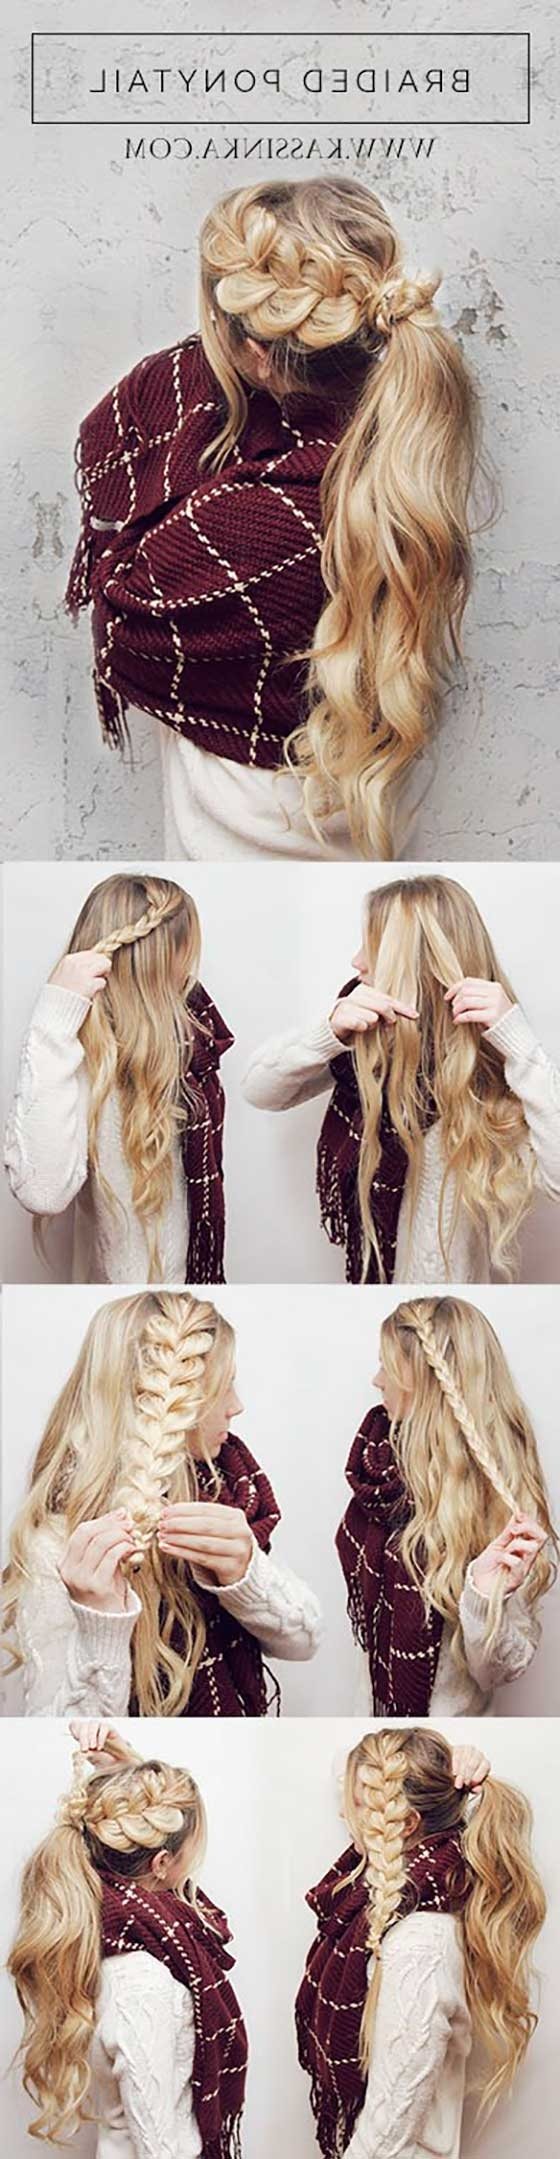 40 Braided Hairstyles For Long Hair Intended For Well Known Ponytail Braids With Quirky Hair Accessory (View 14 of 15)